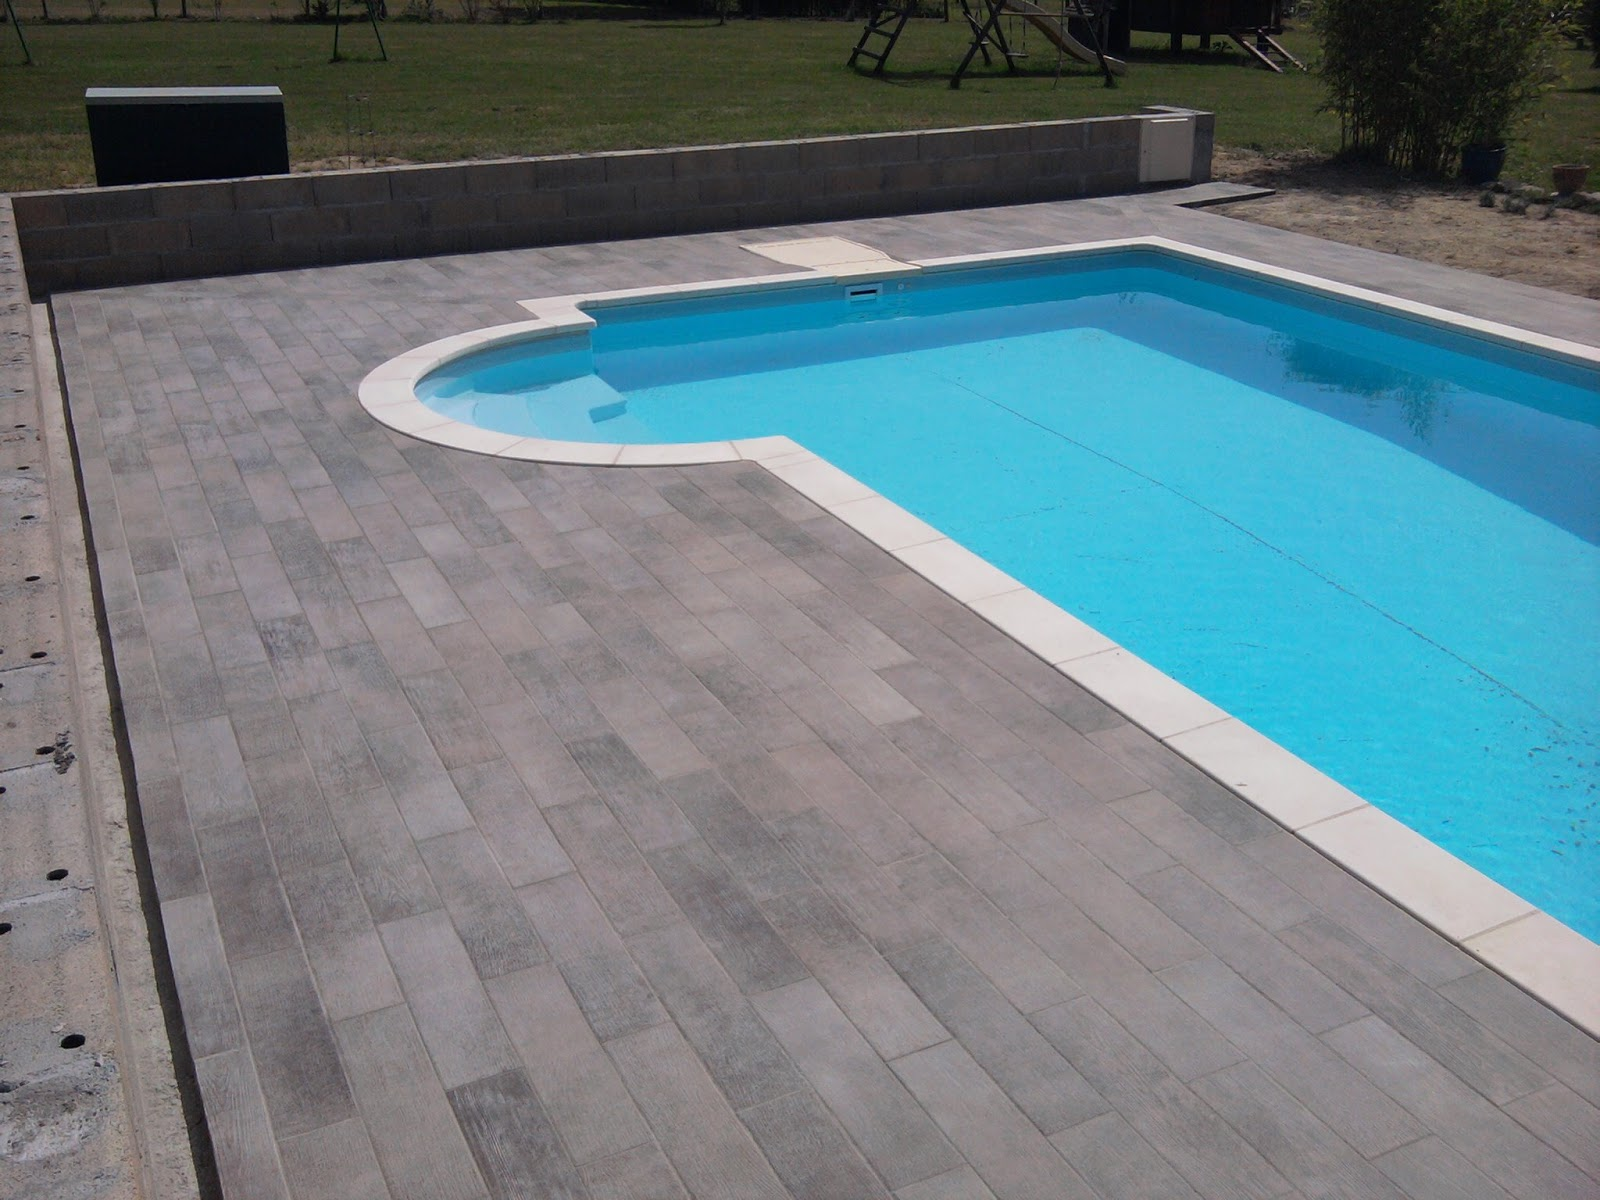 Carrelage autour de la piscine 28 images terrasse for Carrelage de piscine